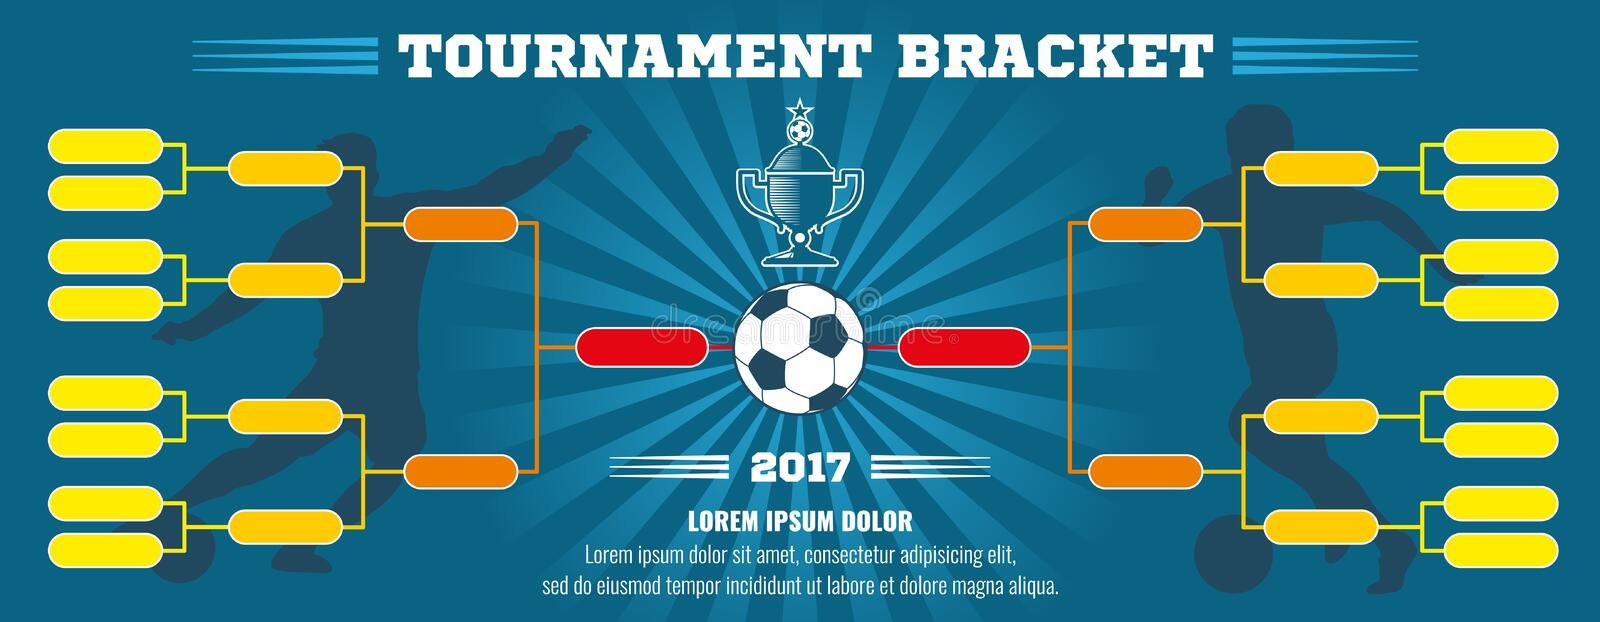 Soccer banner, European football tournament bracket with ball. Vector template vector illustration